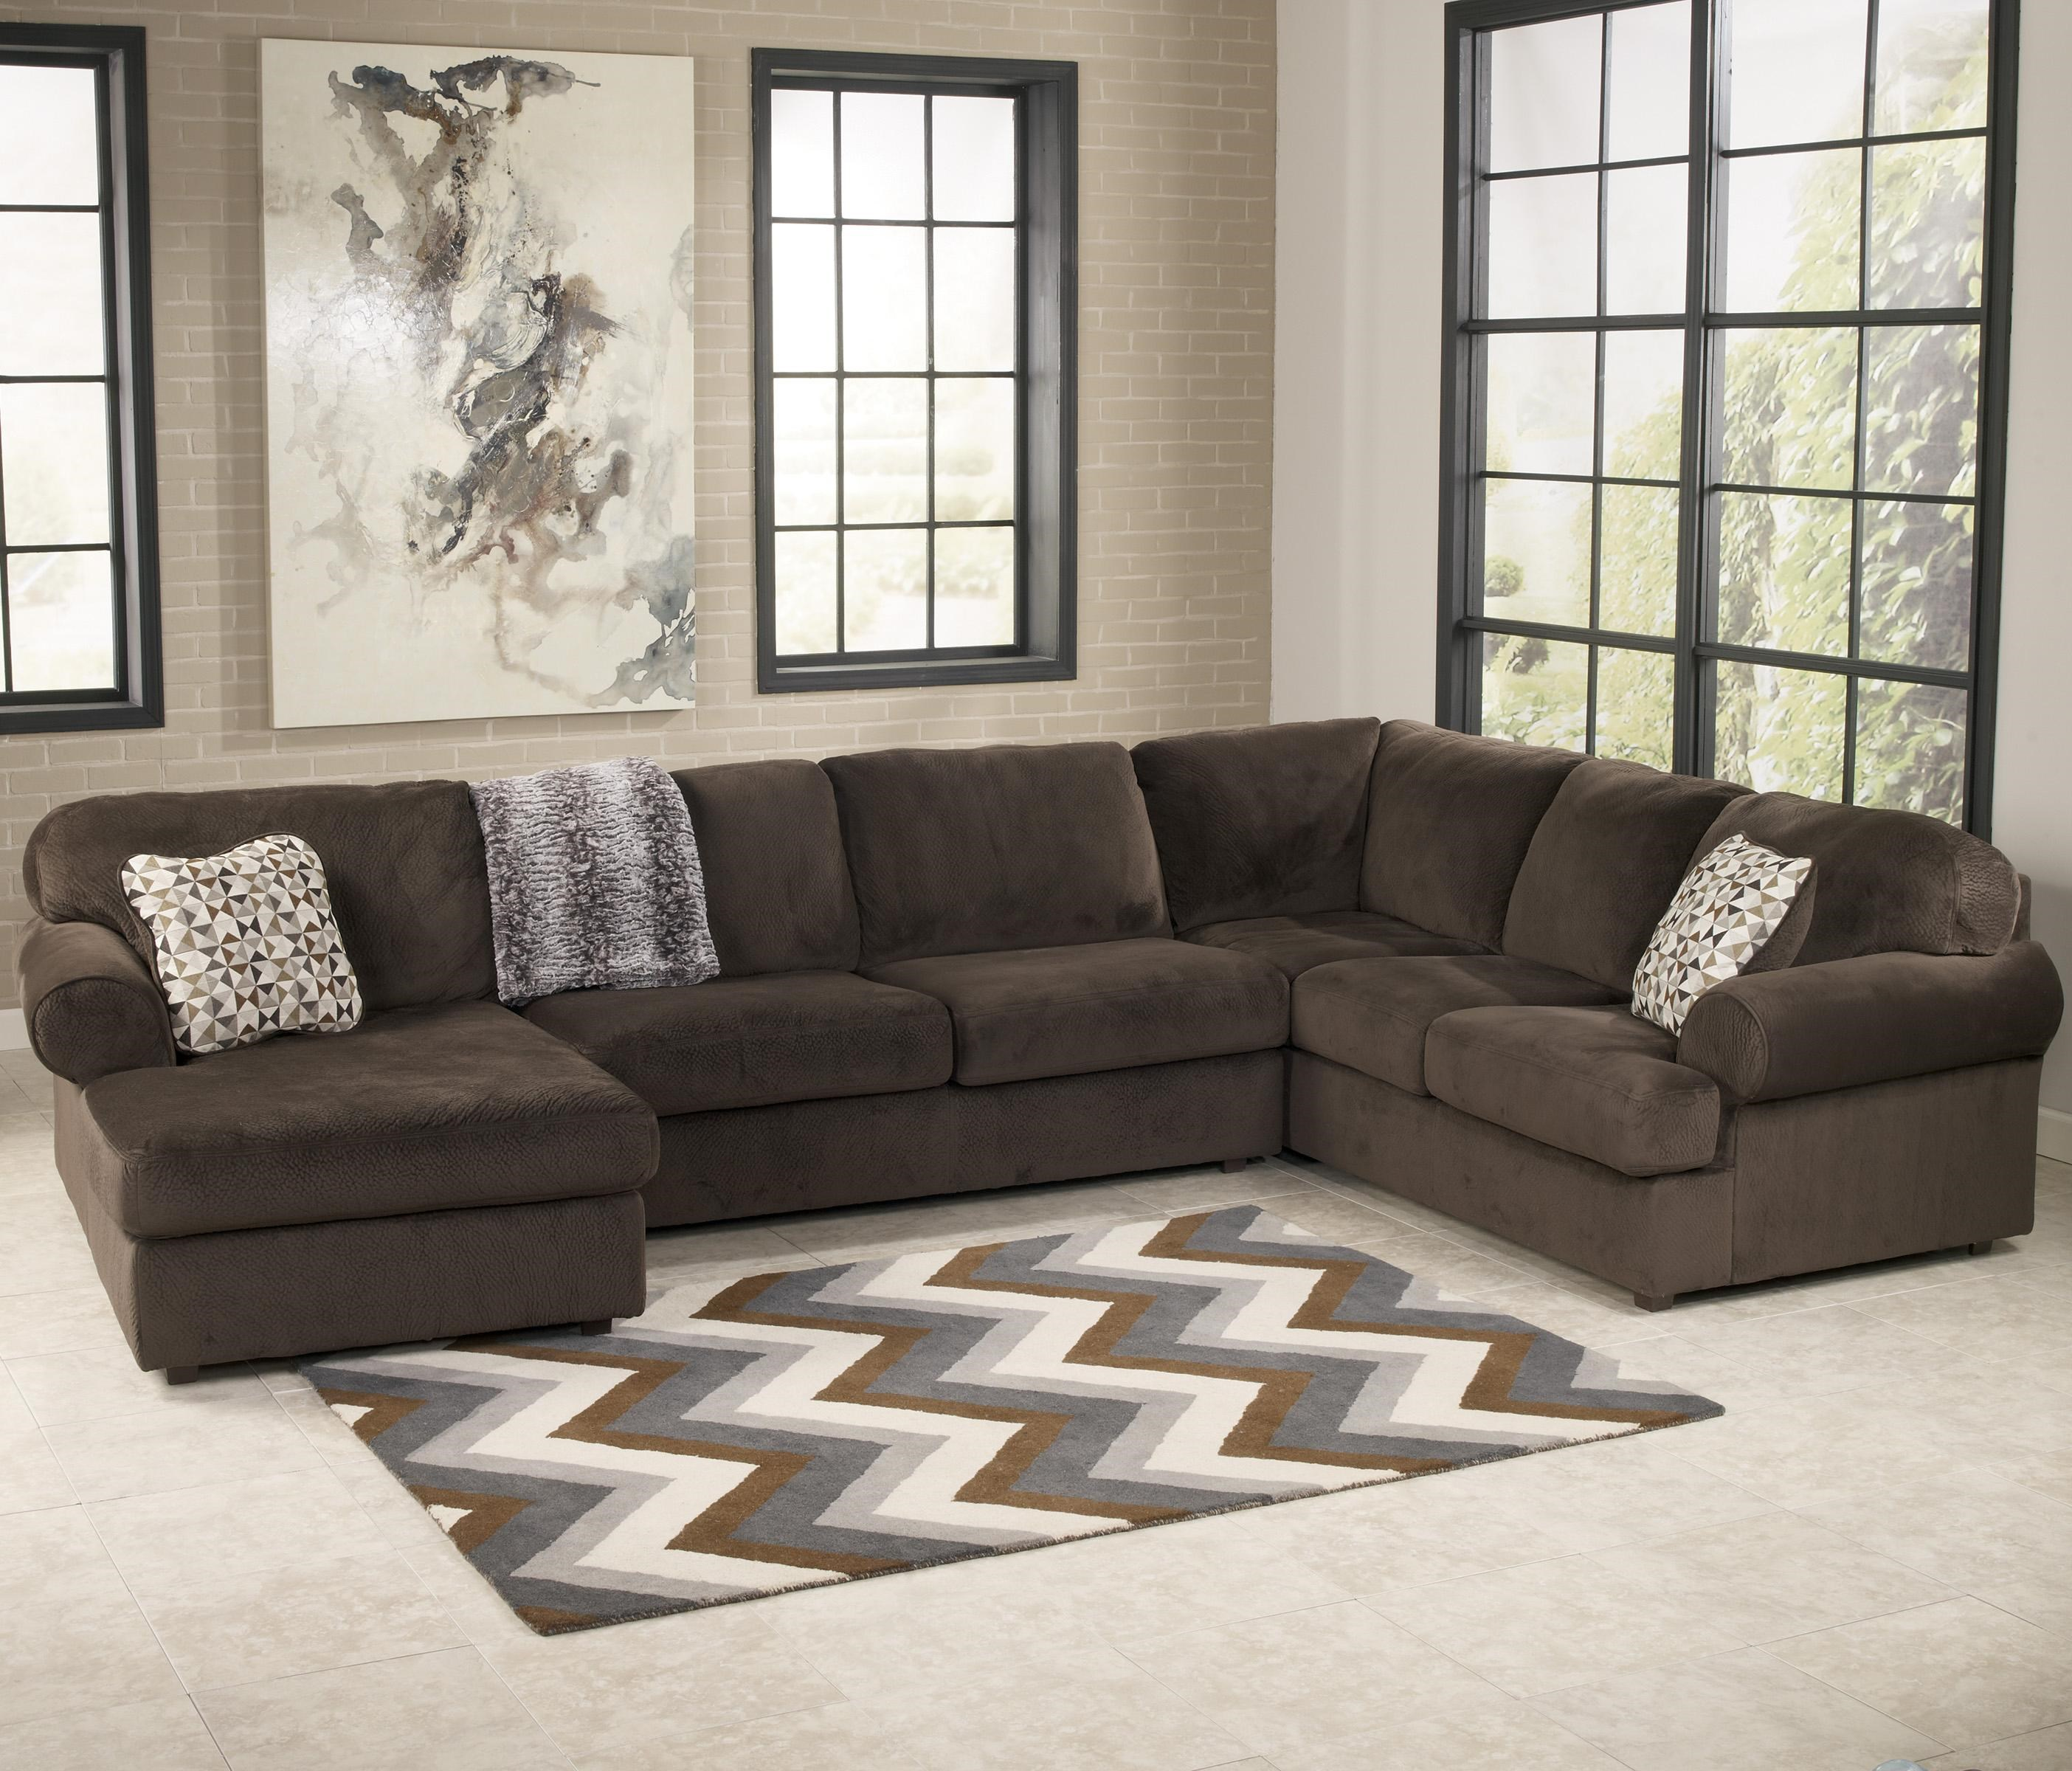 Shown with Coordinating Collection Ottoman : ashley sofa sectional - Sectionals, Sofas & Couches